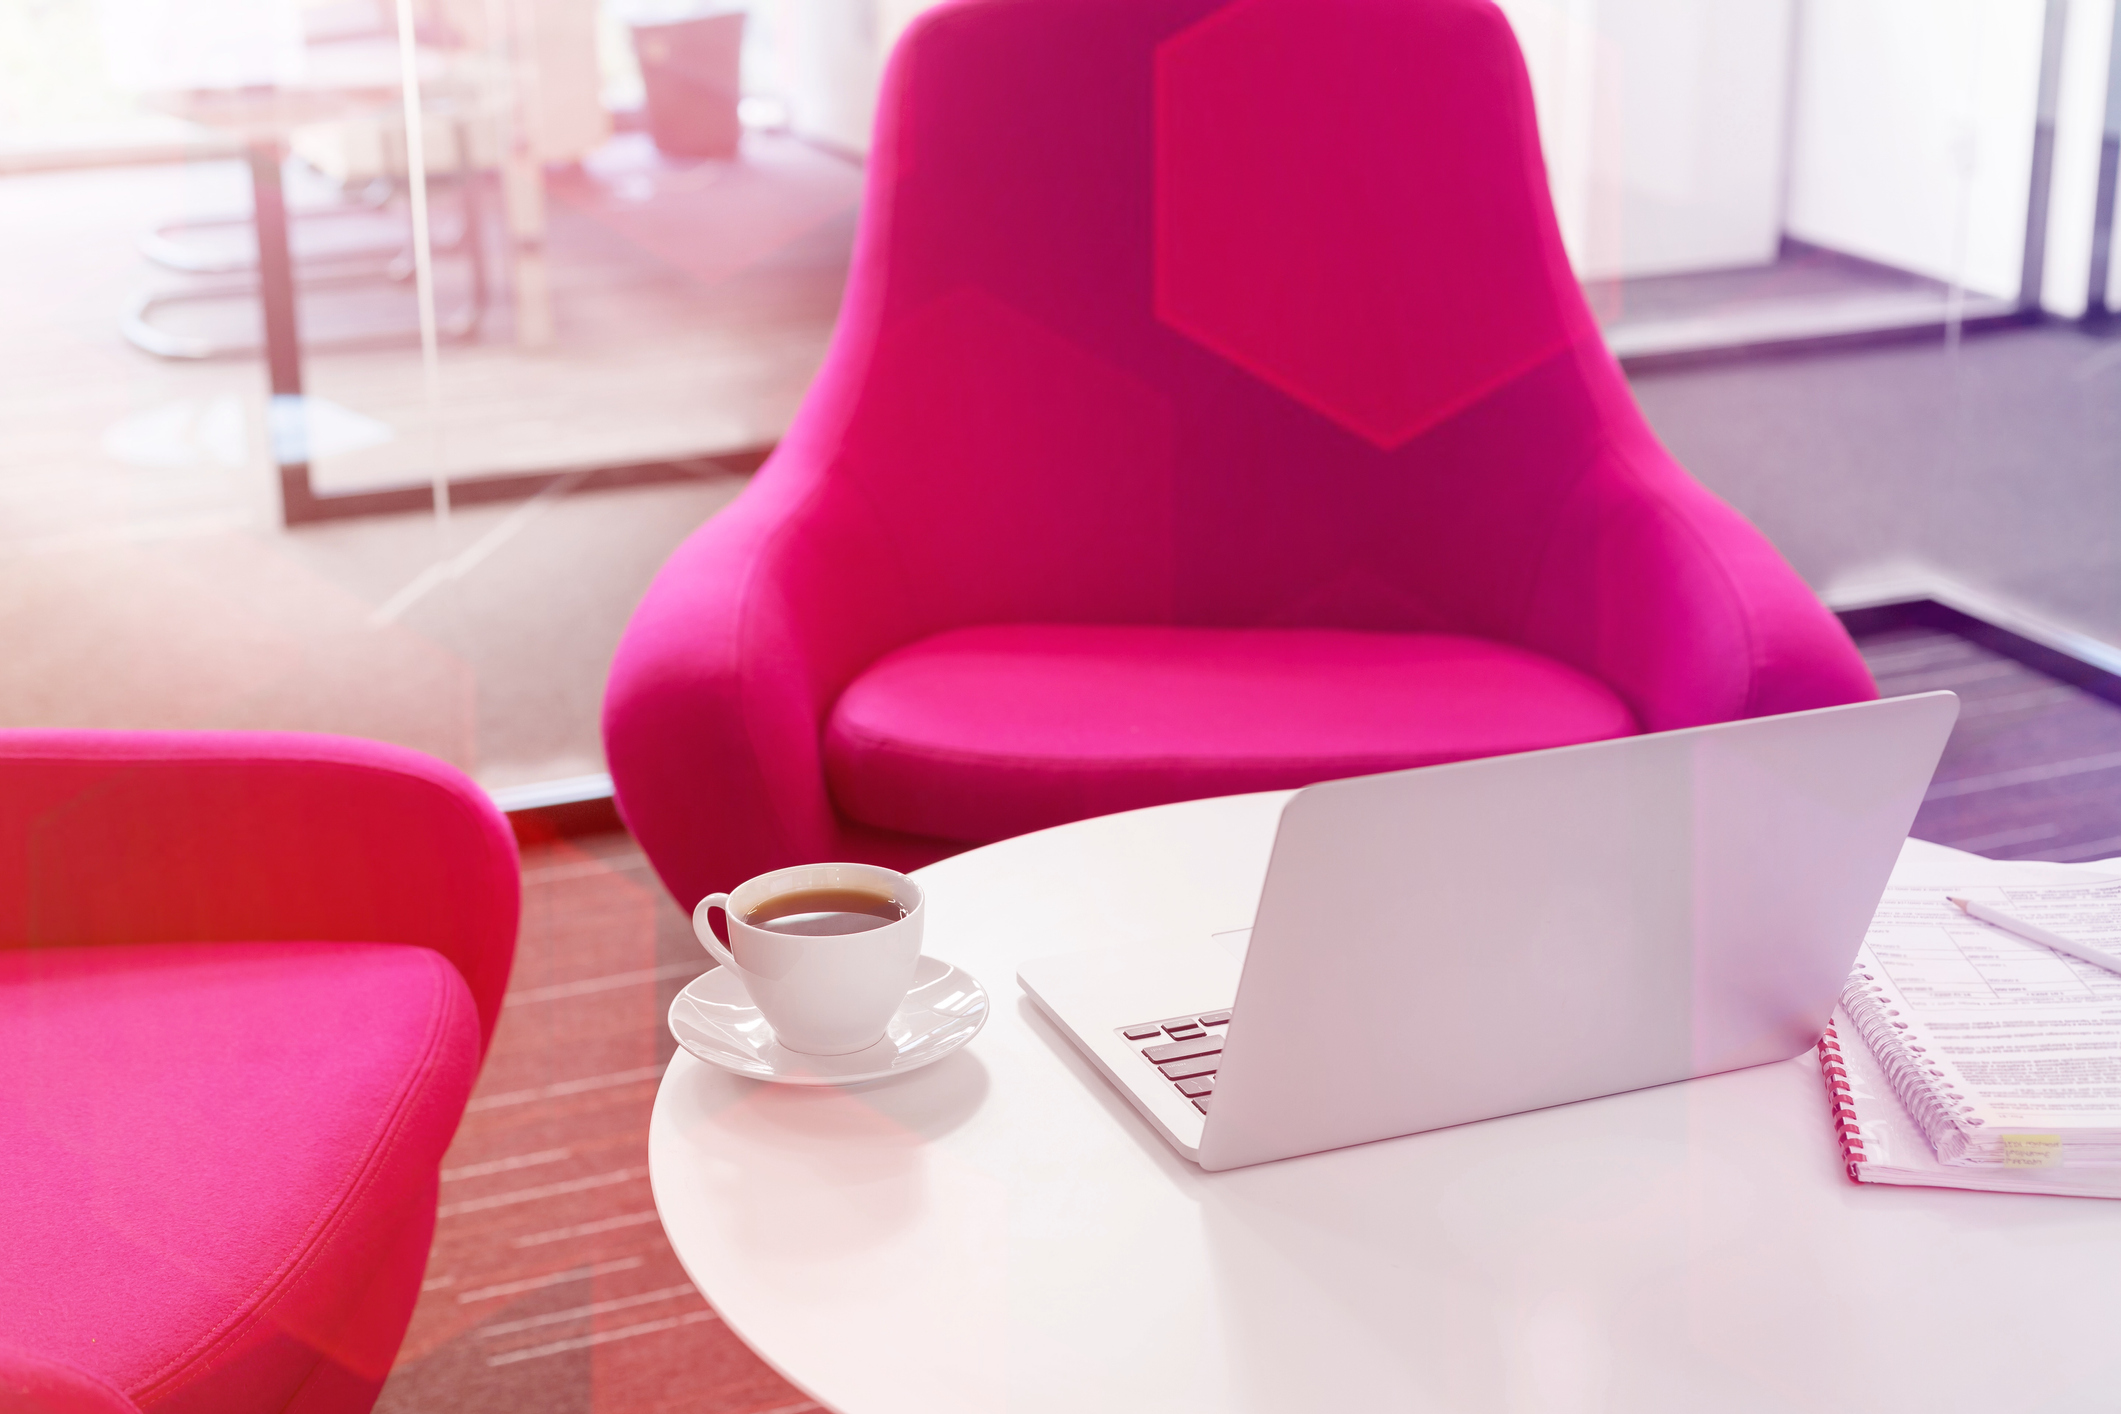 Image showing a pink couch, laptop, and coffee depicting Mesmer's comfortable environment. See our open positions.